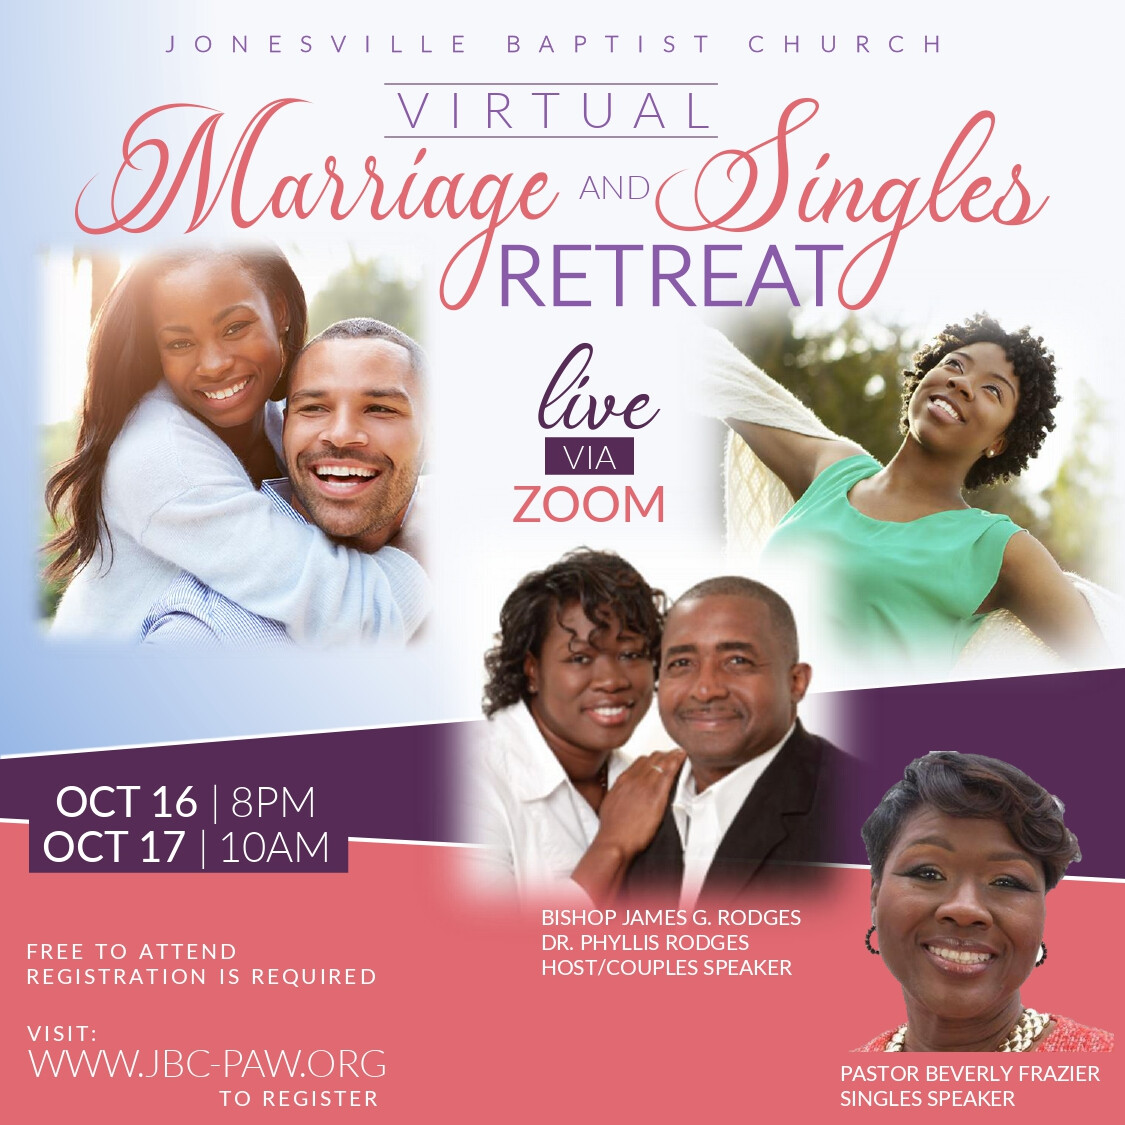 Virtual Marriage and Singles Retreat